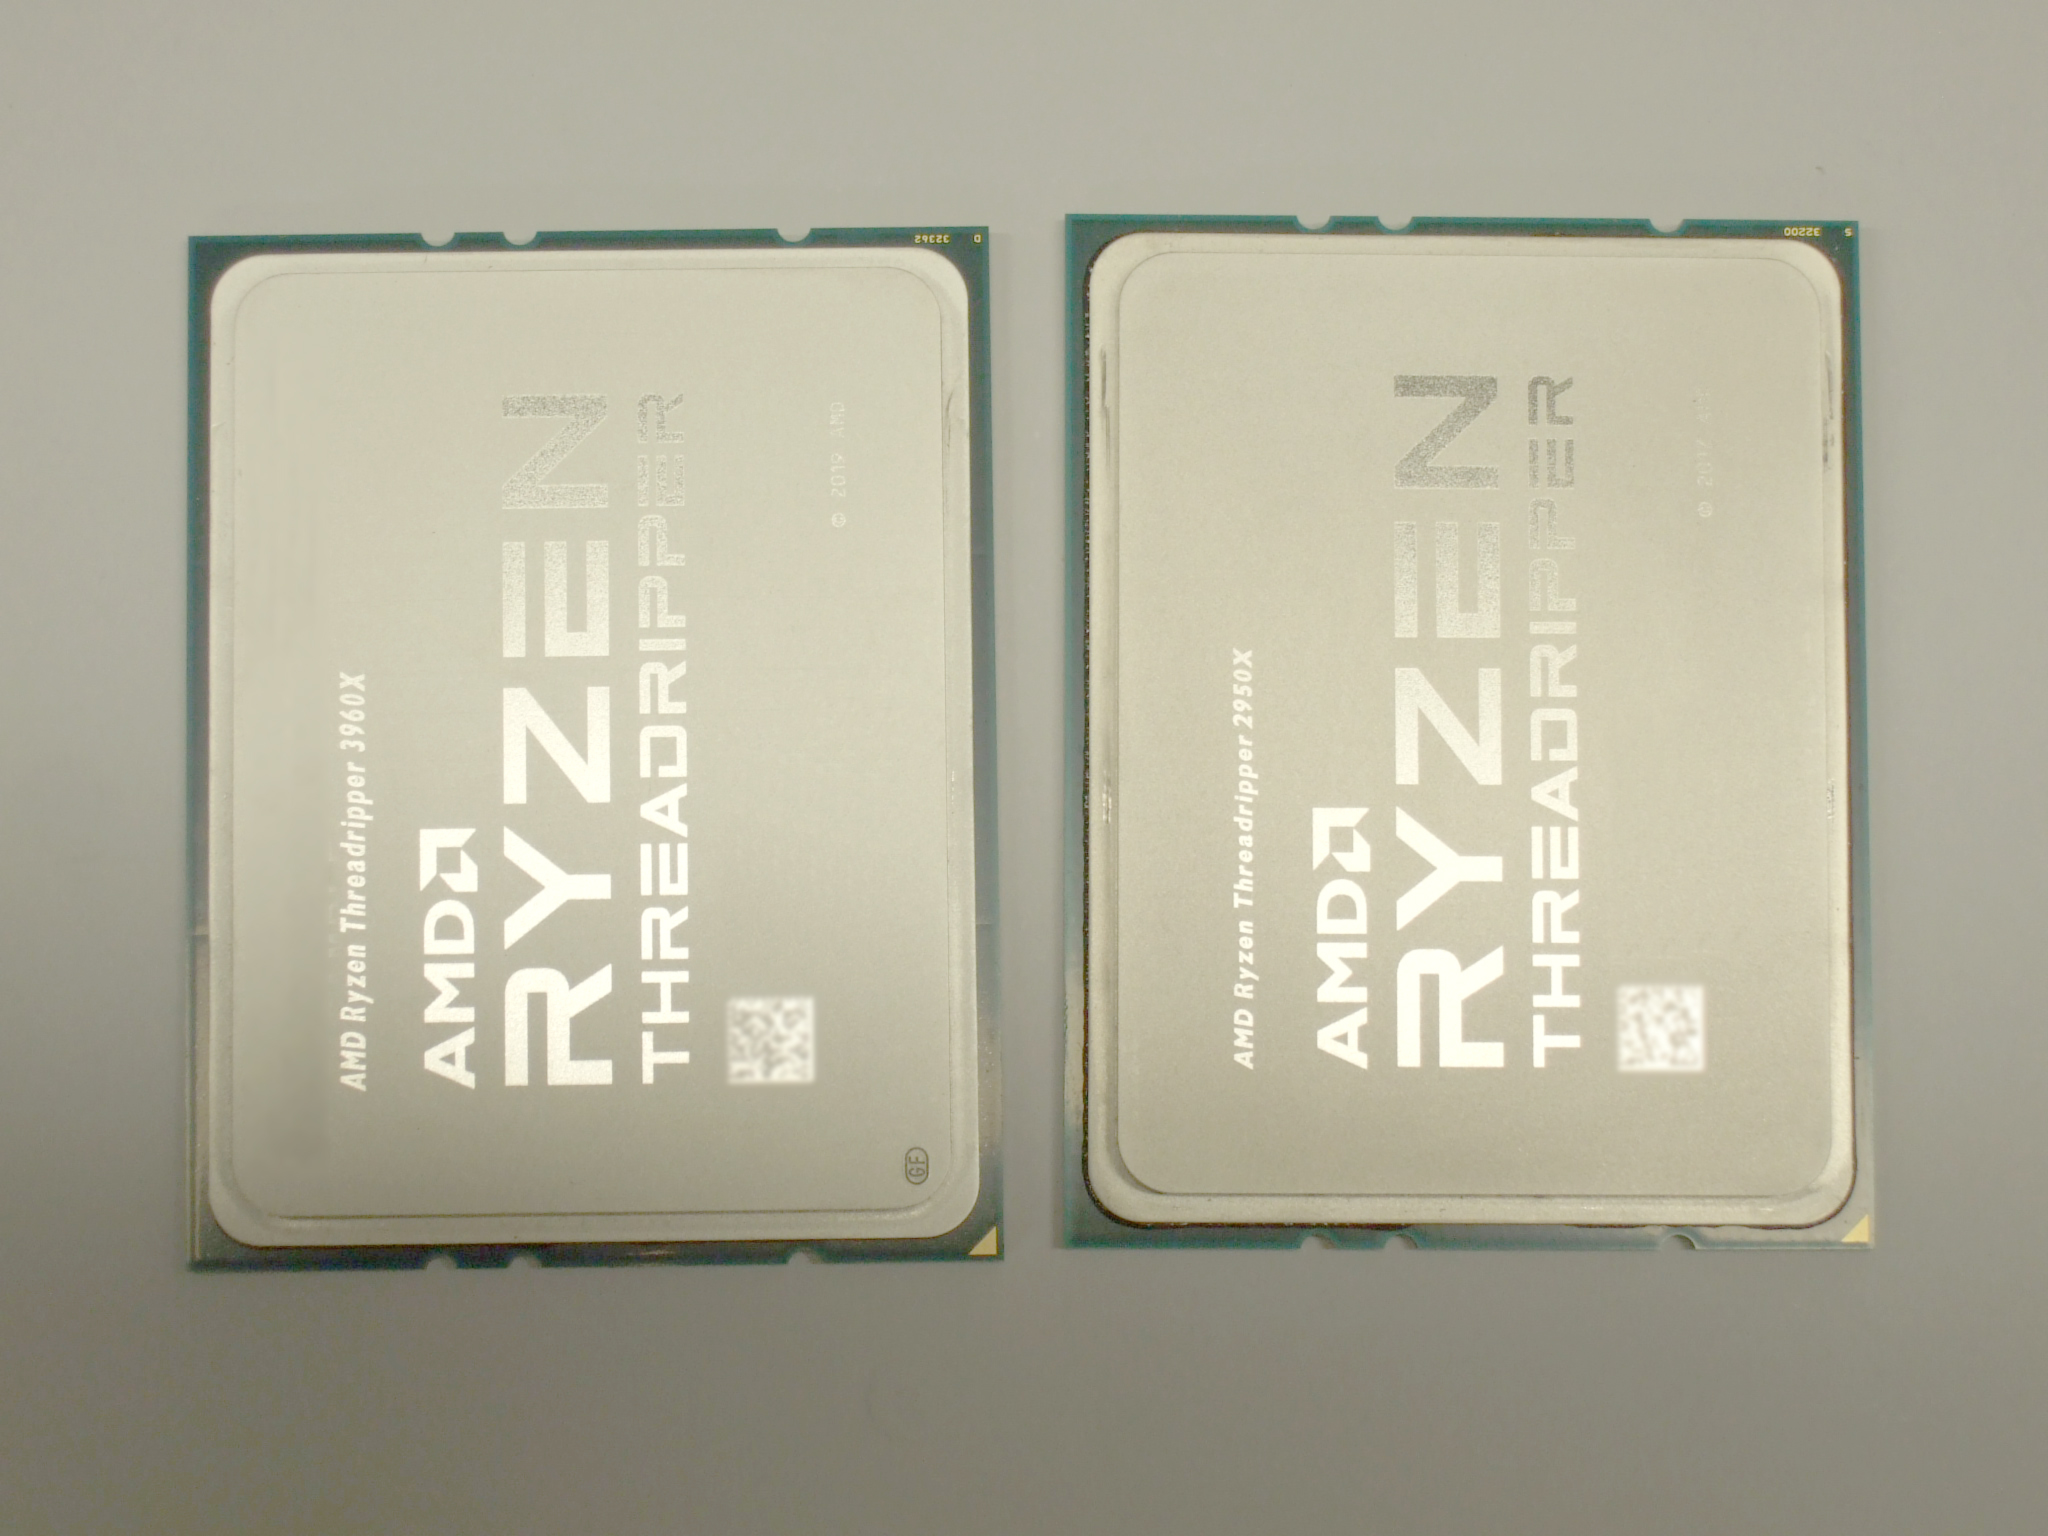 左:第3世代Ryzen Threadripper、右:第2世代 Ryzen ThreadripperのCPU表面